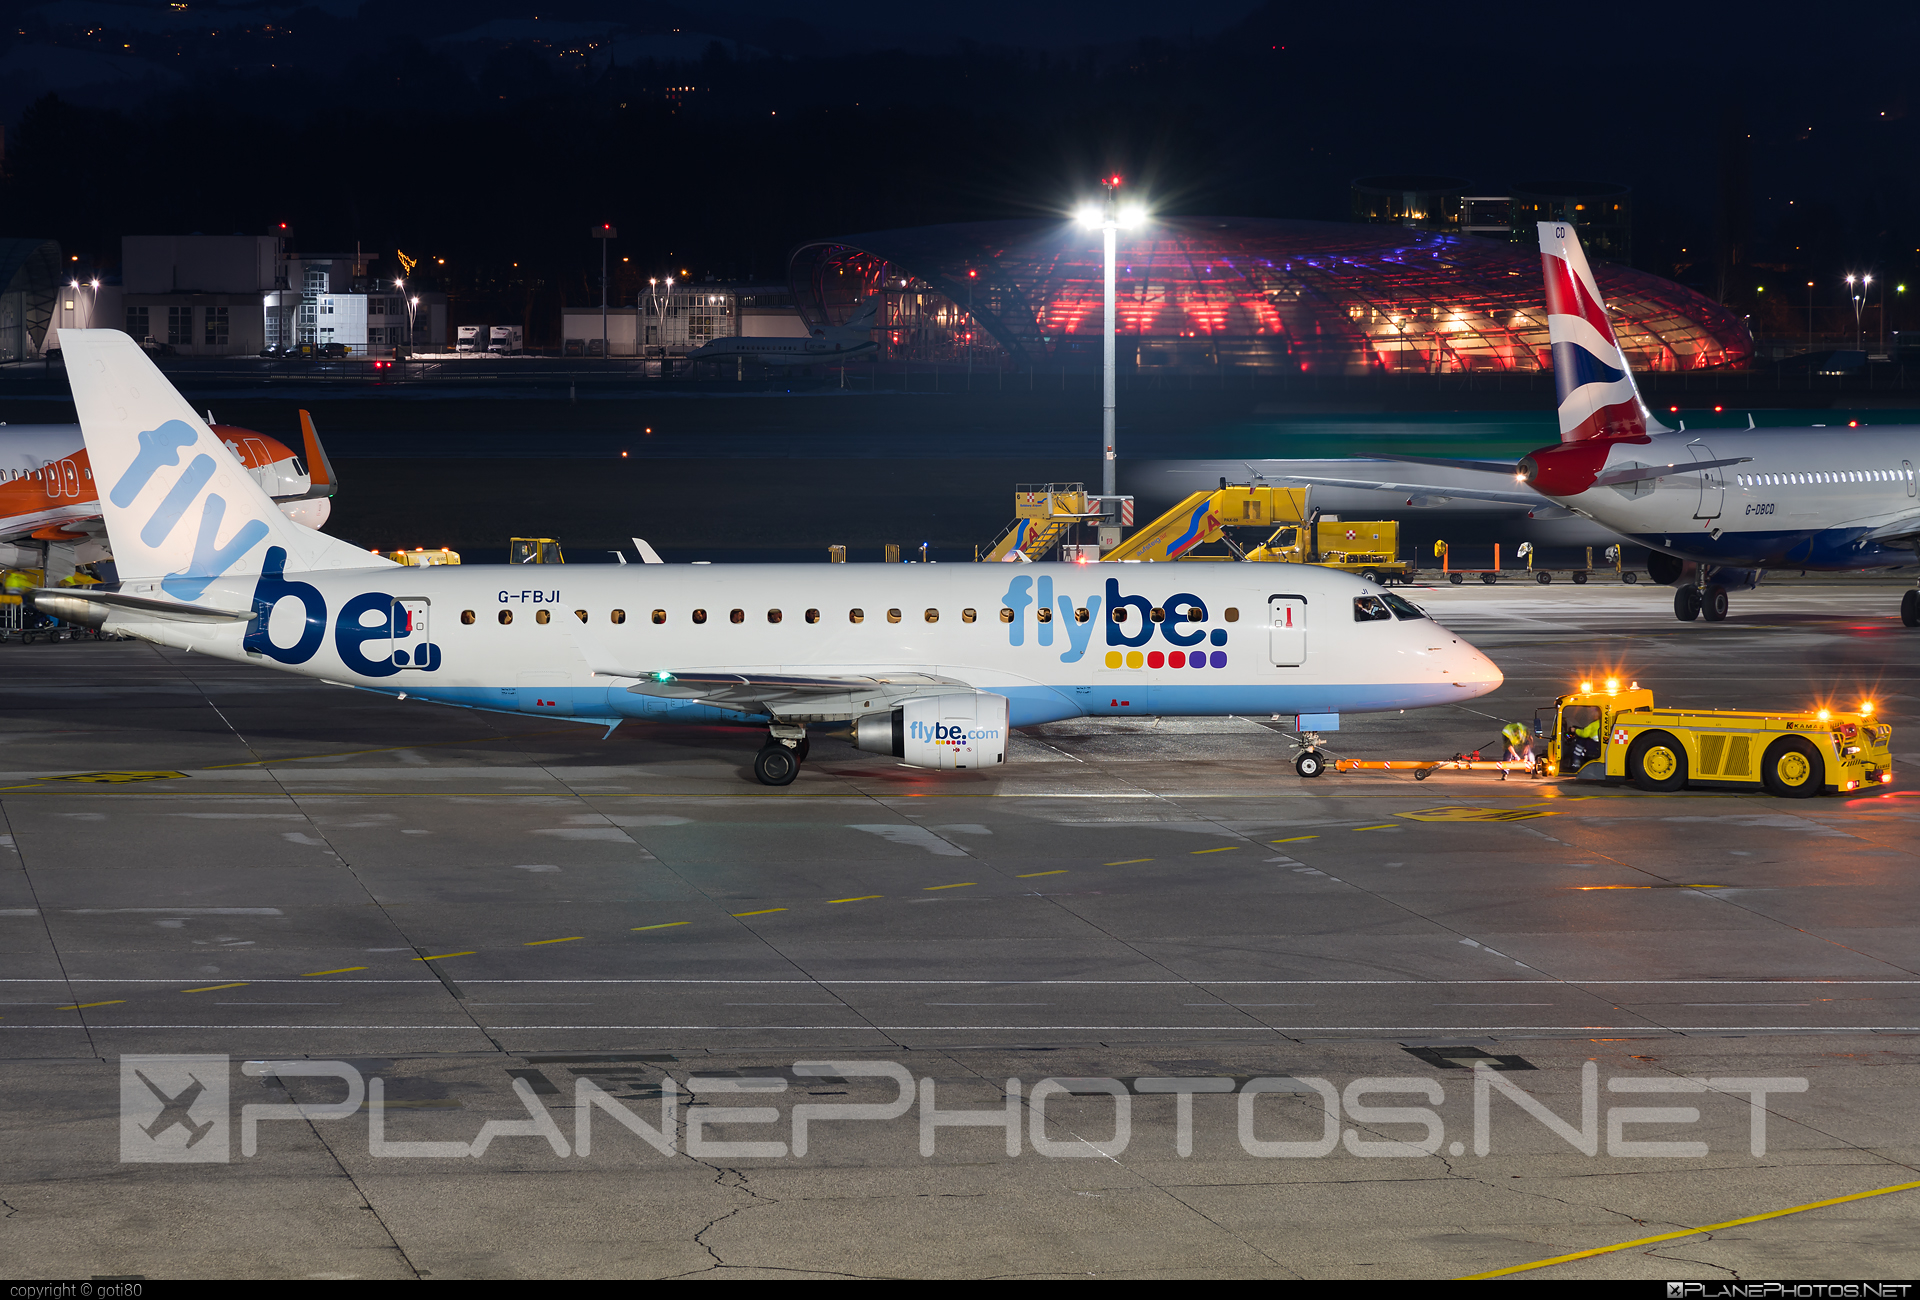 Embraer E175STD (ERJ-170-200STD) - G-FBJI operated by Flybe #e175 #embraer #embraer175 #embraer175std #erj170200 #erj170200std #erj175 #erj175std